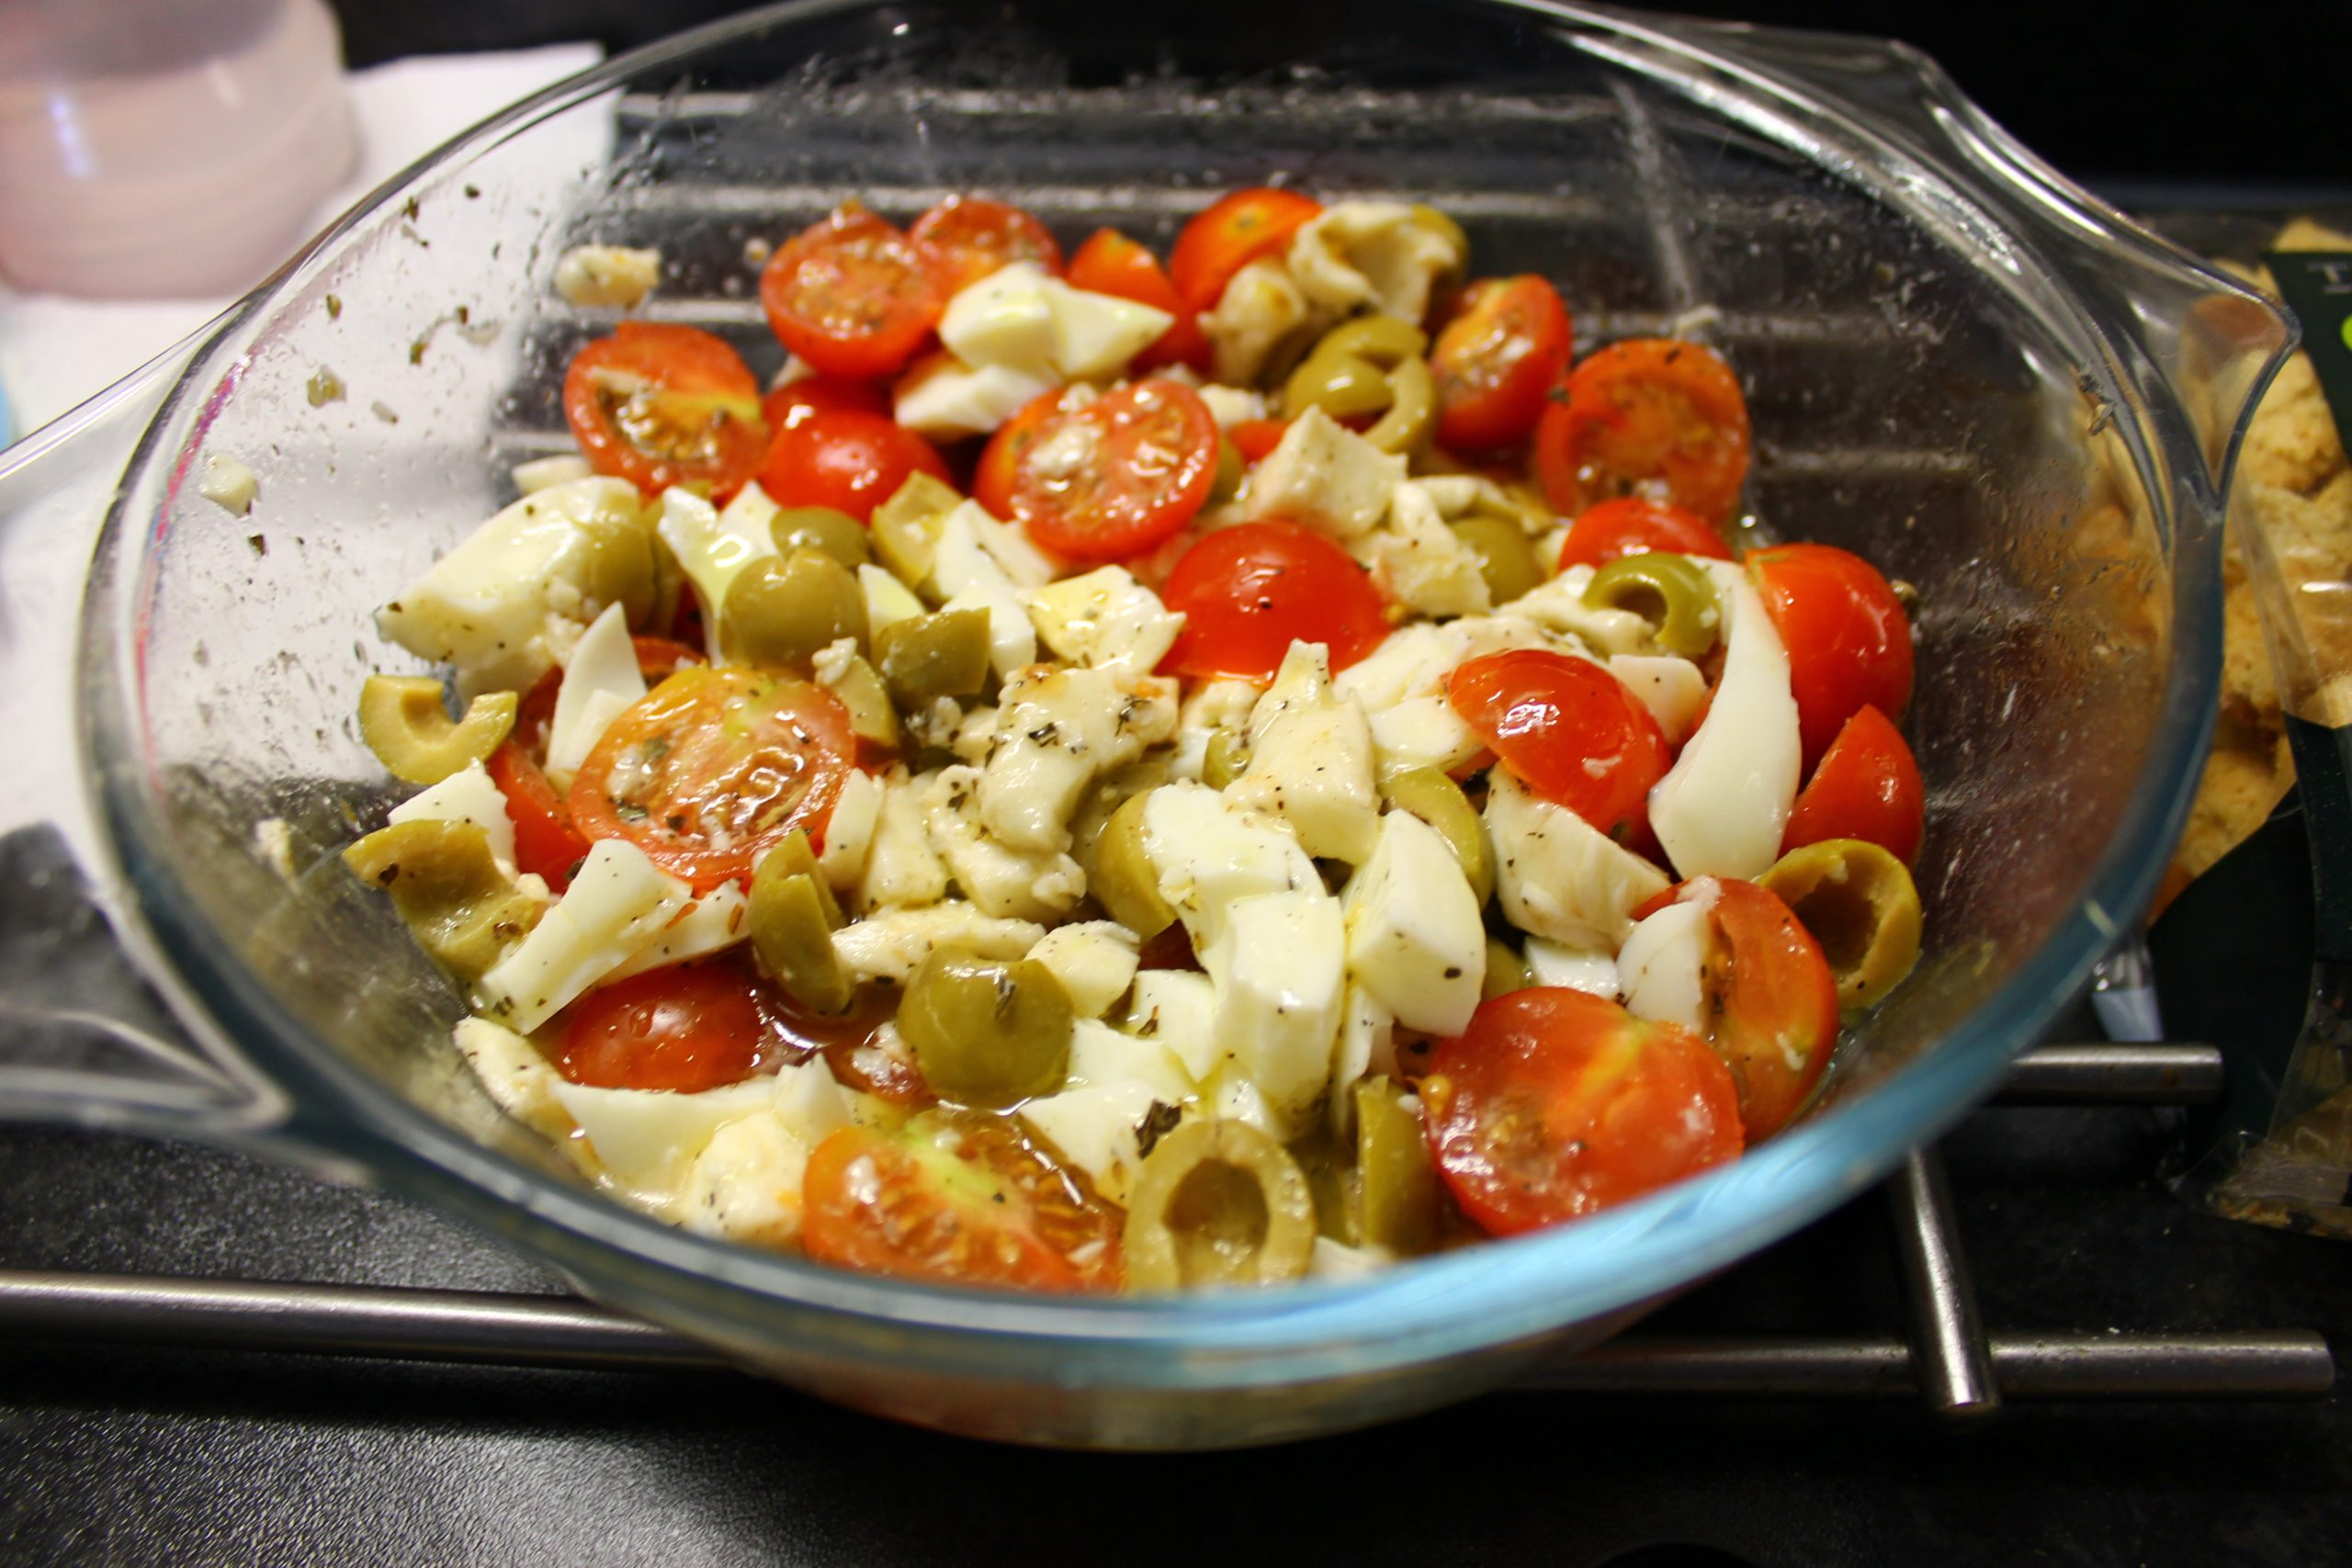 Andrade's Mozzarella and Cherry Tomato Salad